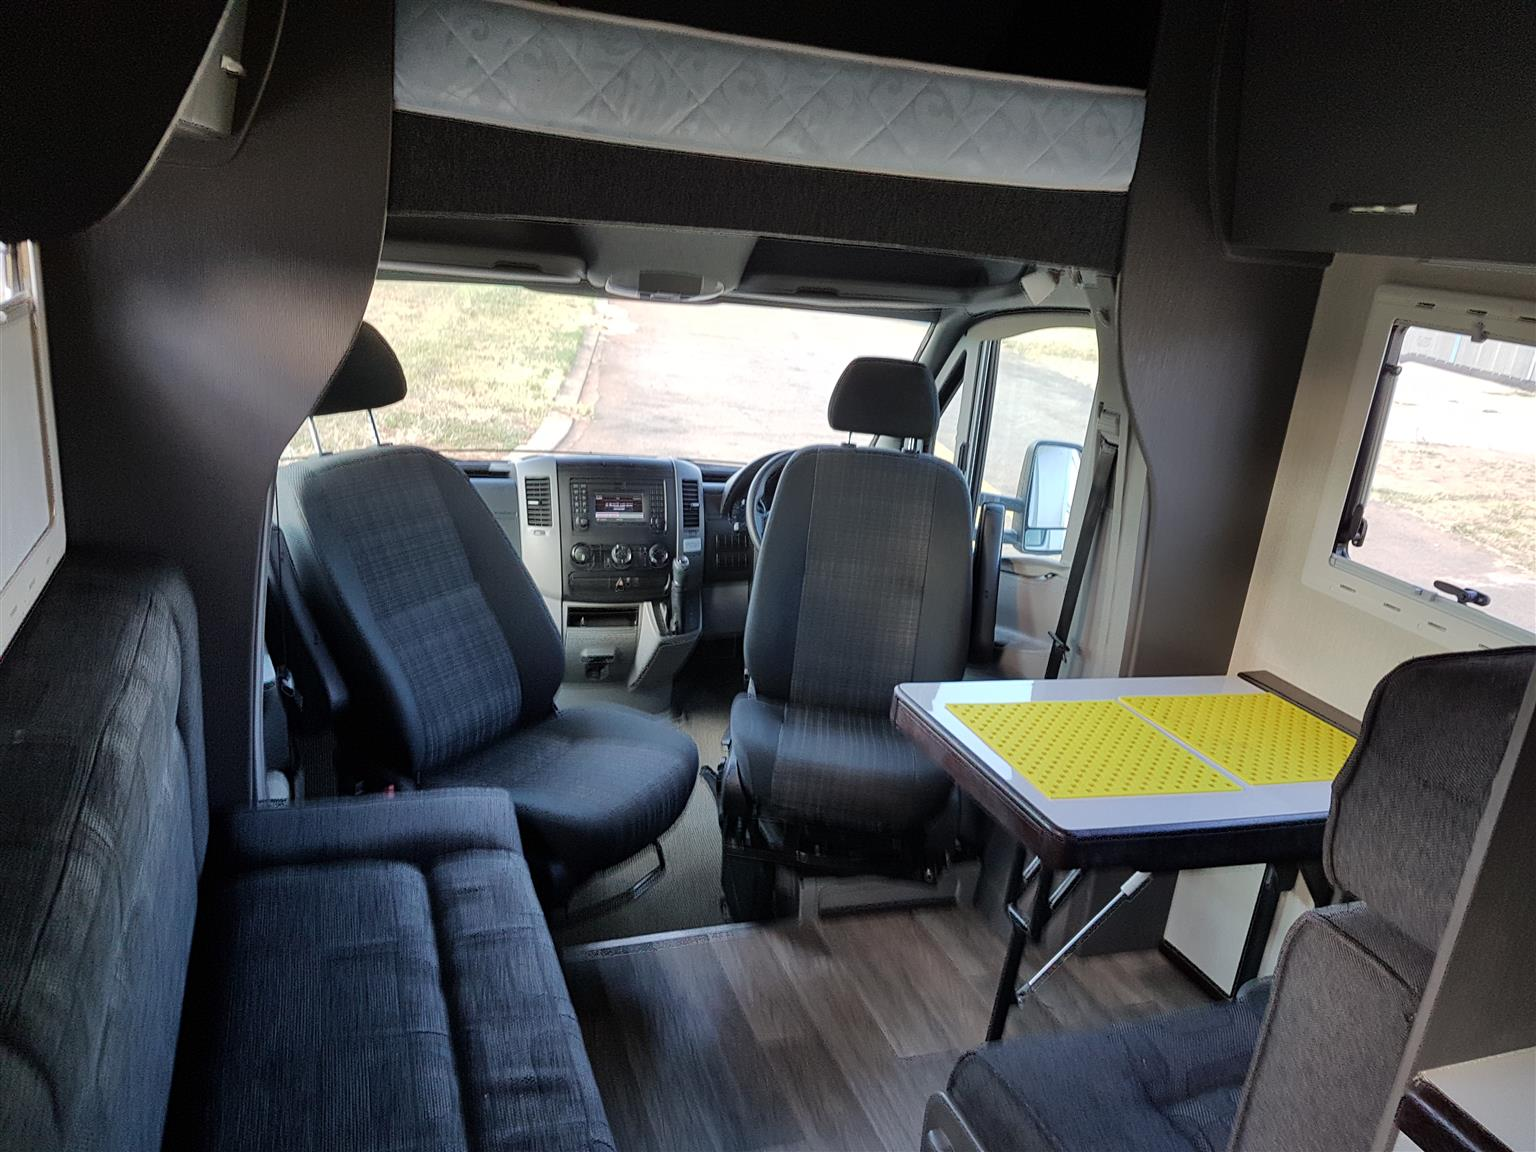 Motorhome 2016 Mercedes Benz sprinter VISTA 6